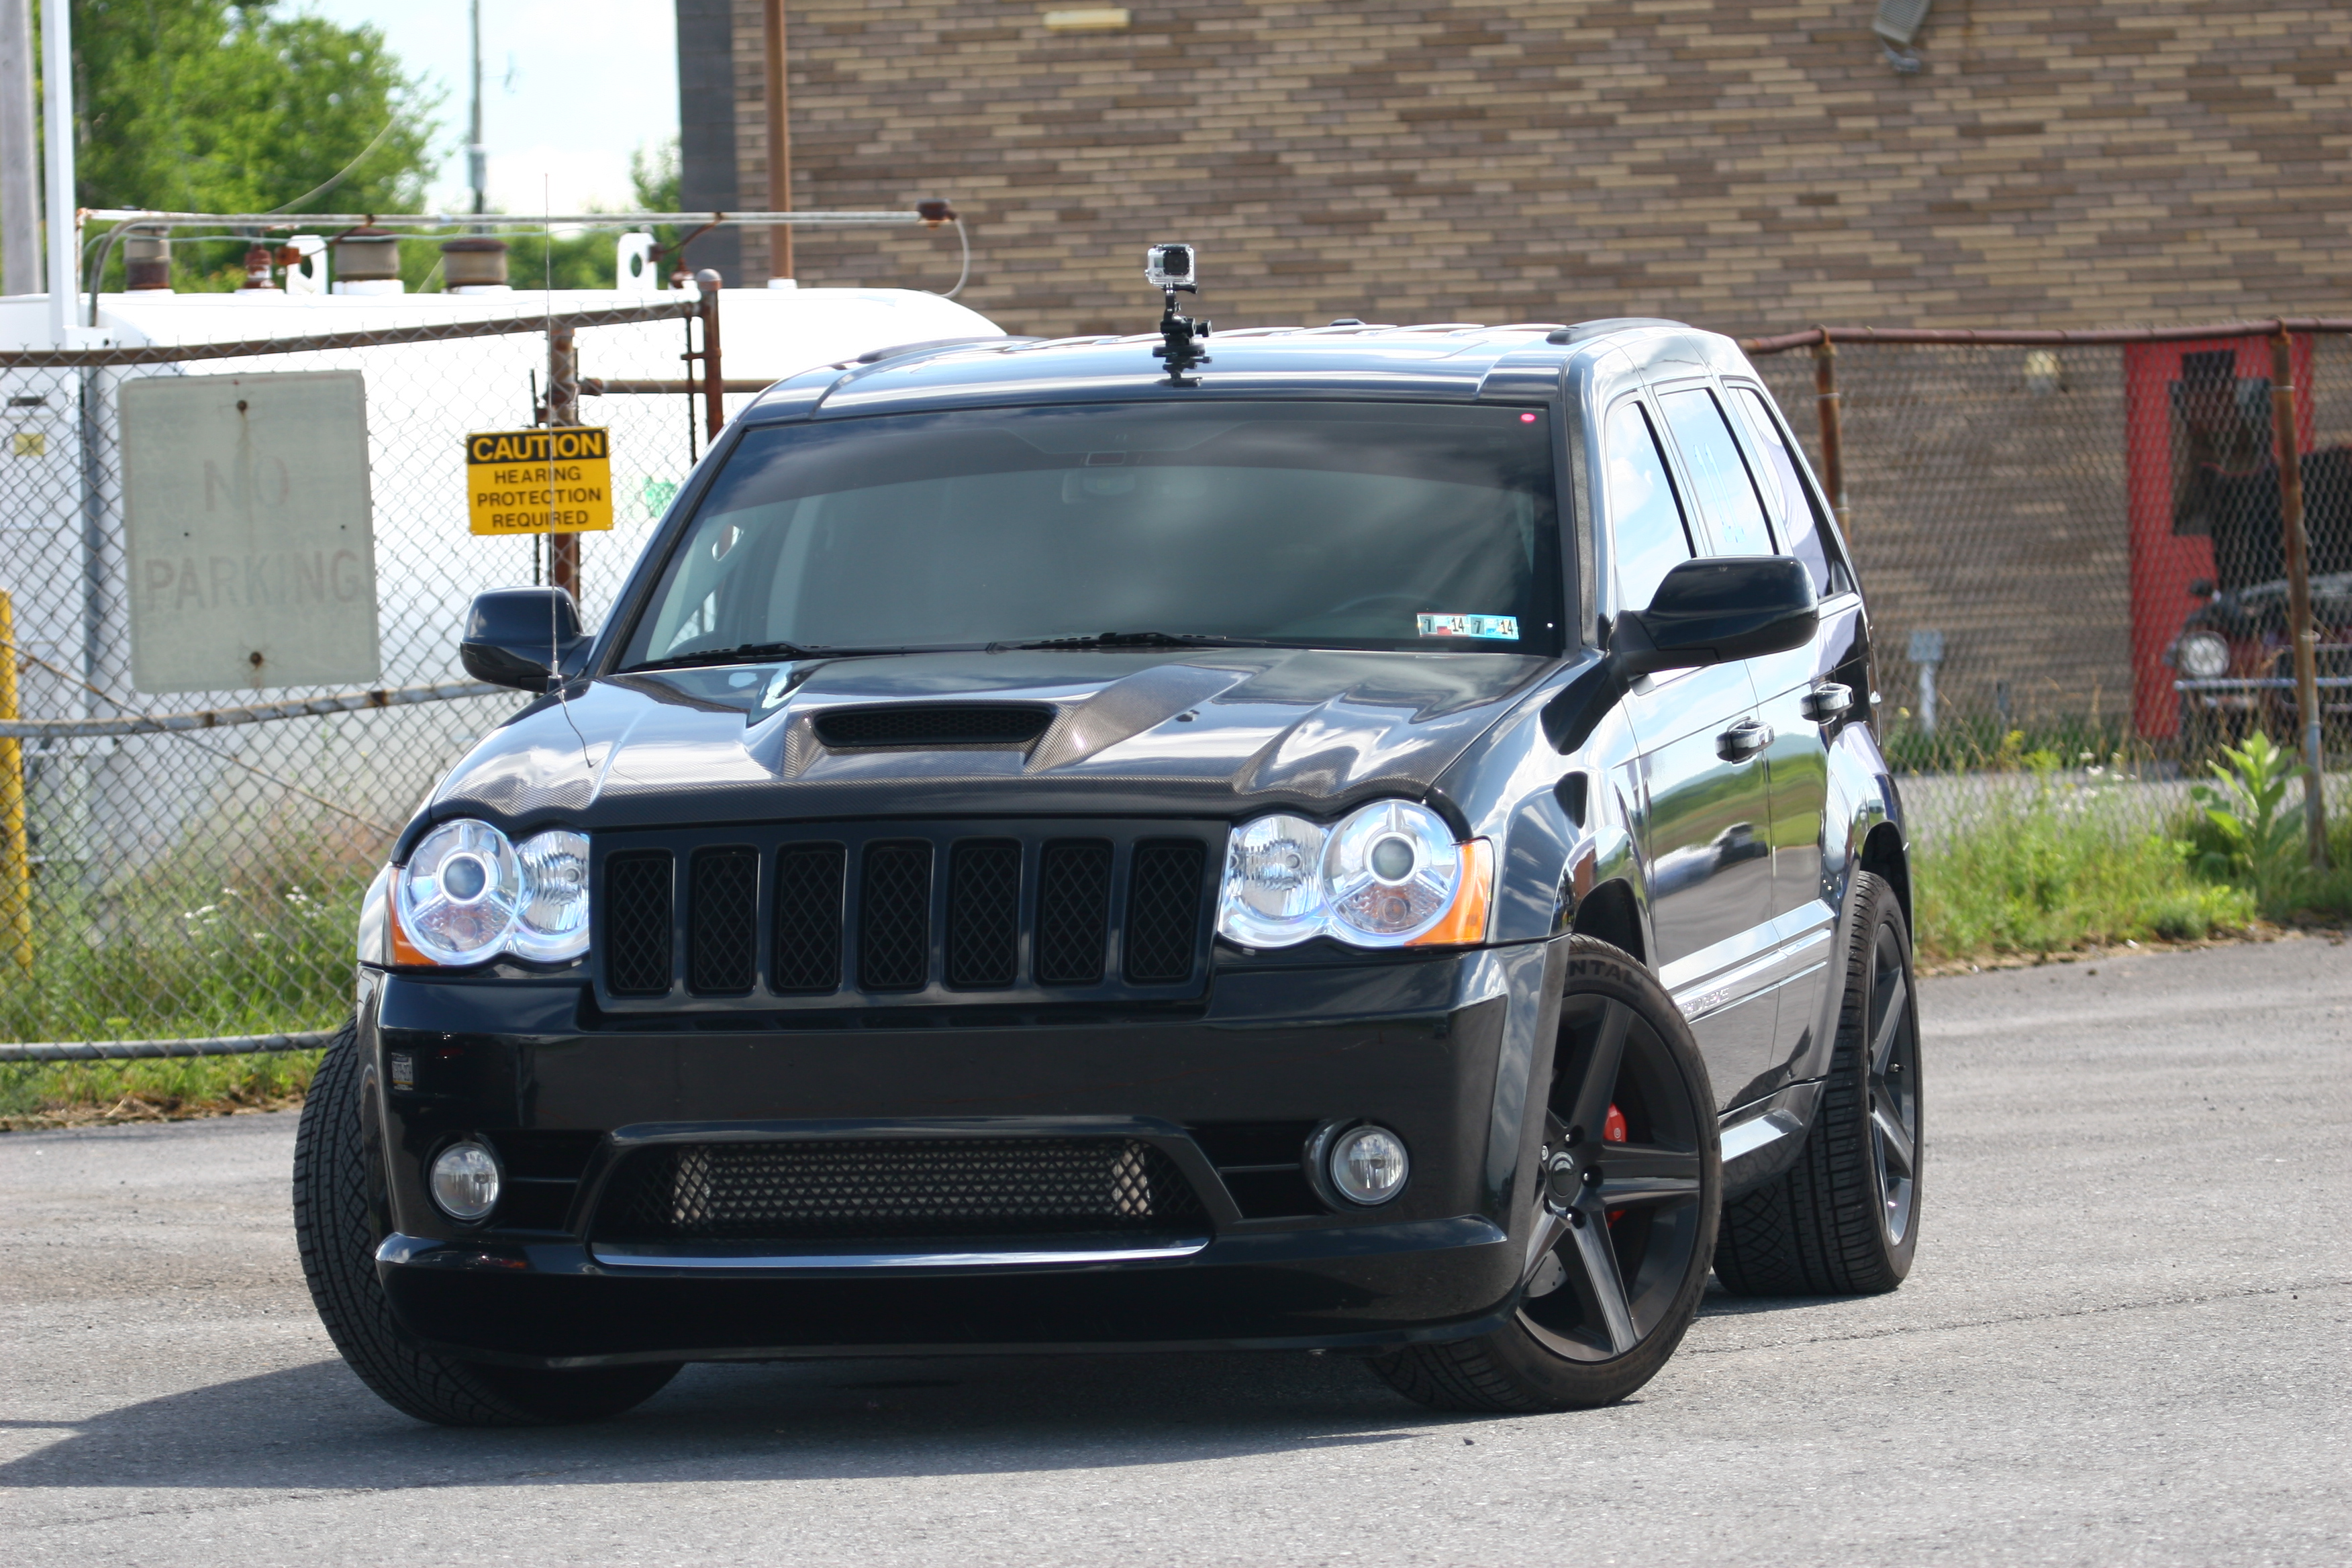 2006 Jeep Commander Lifted 2010 Jeep Grand Cherokee SRT8 Sport Utility 4D Page 2 ...